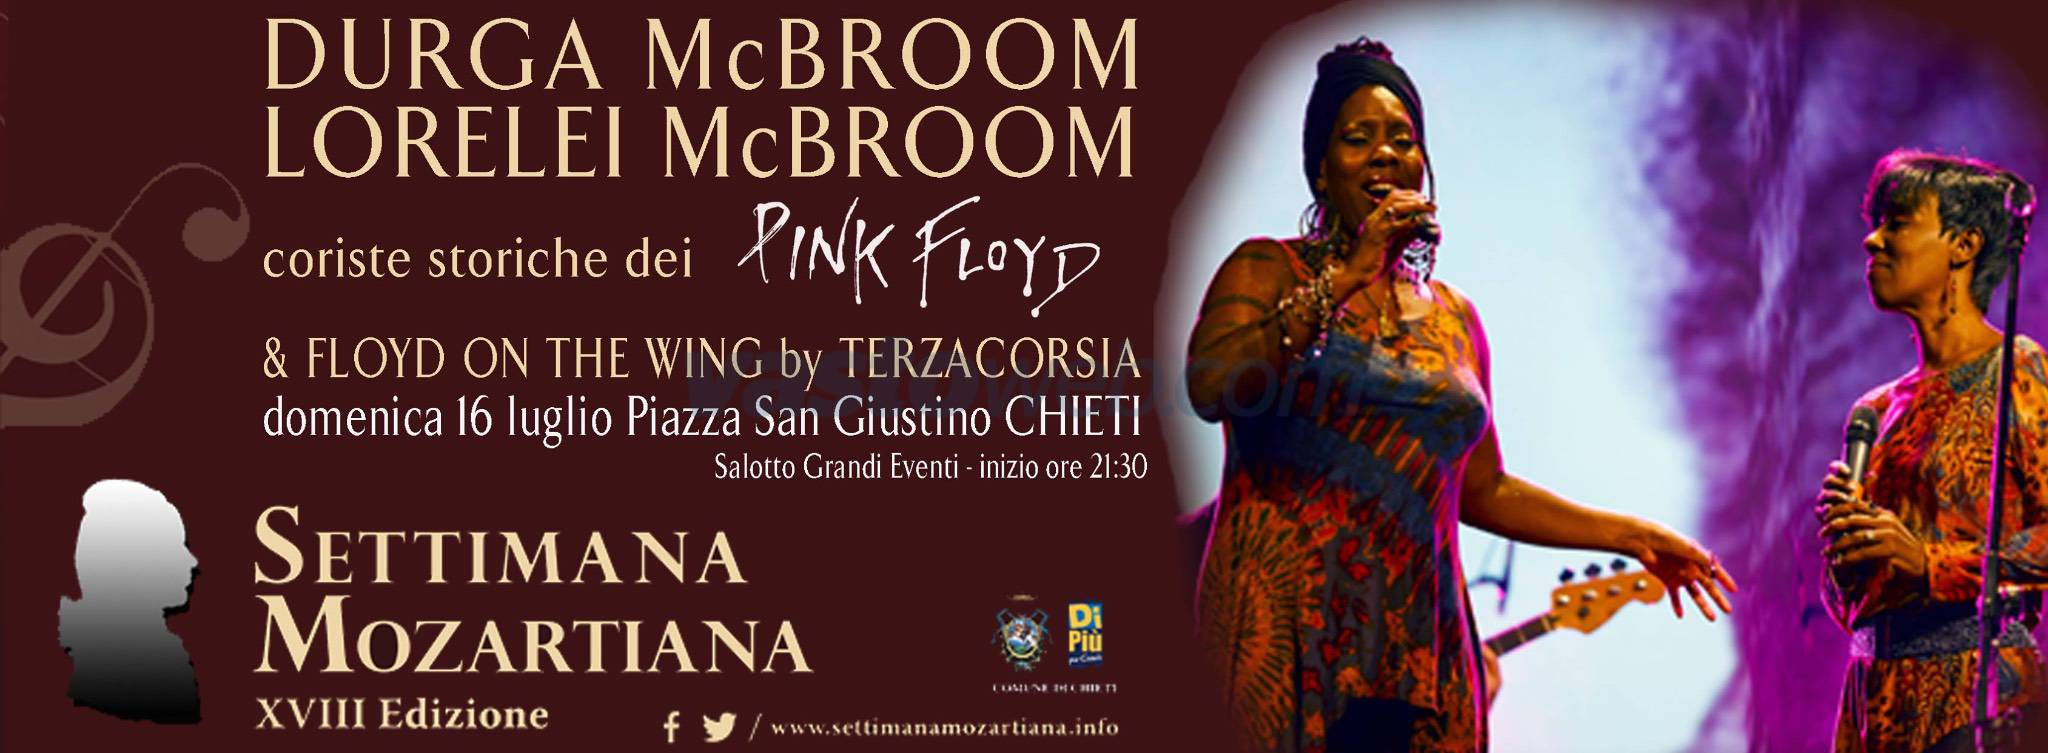 A Chieti le due coriste dei Pink Floyd insieme ai Floyd on the Wing by Terzacorsia